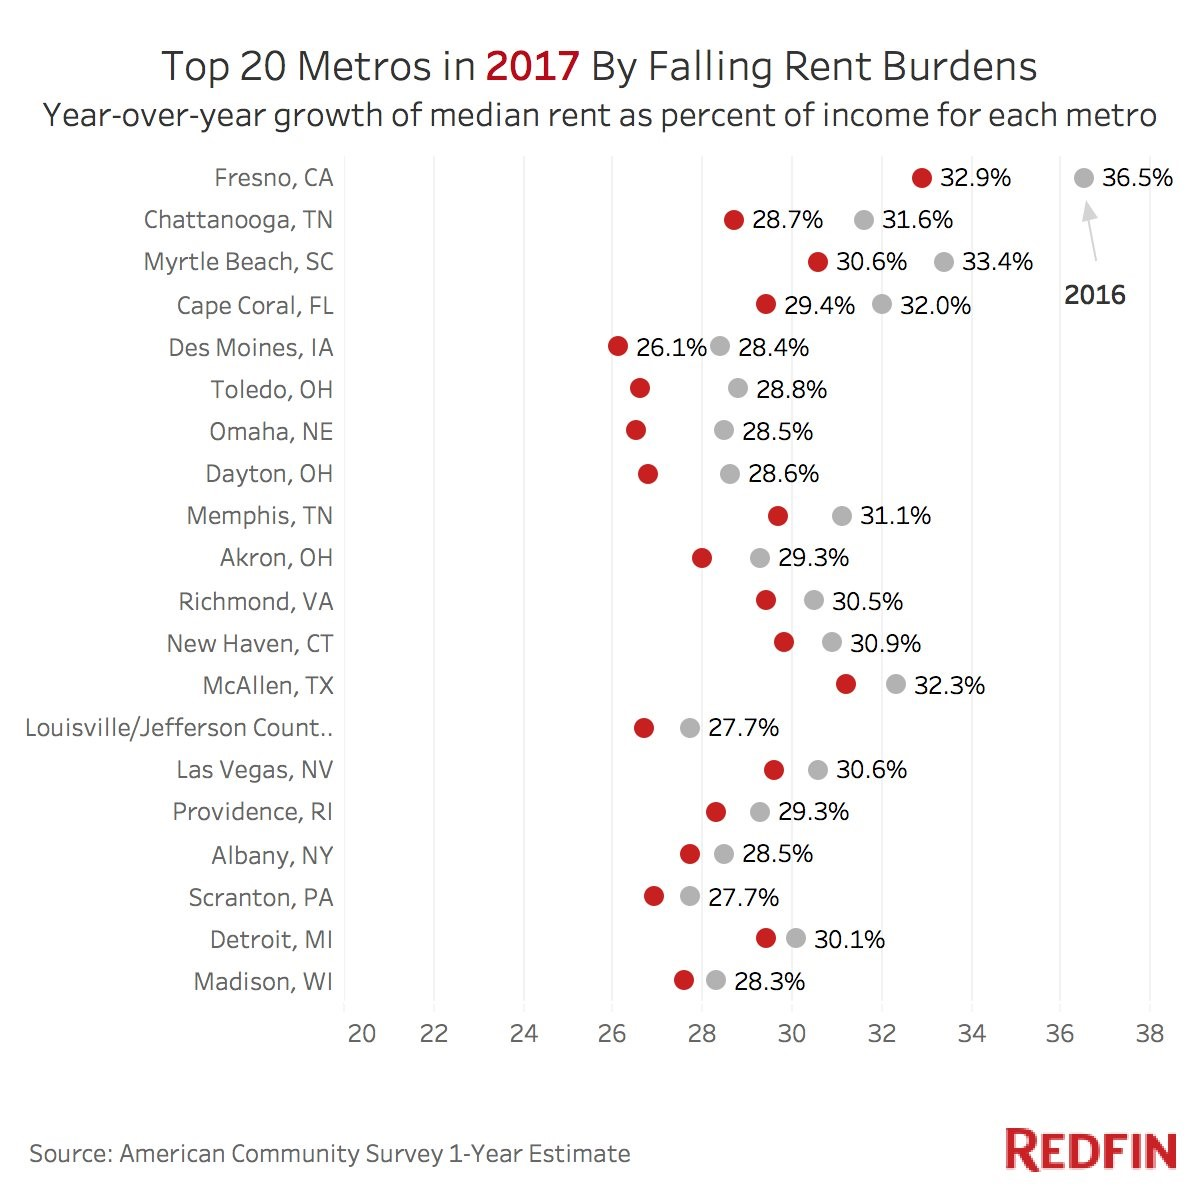 Top 20 Metros in 2017 By Falling Rent Burdens. Redfin.